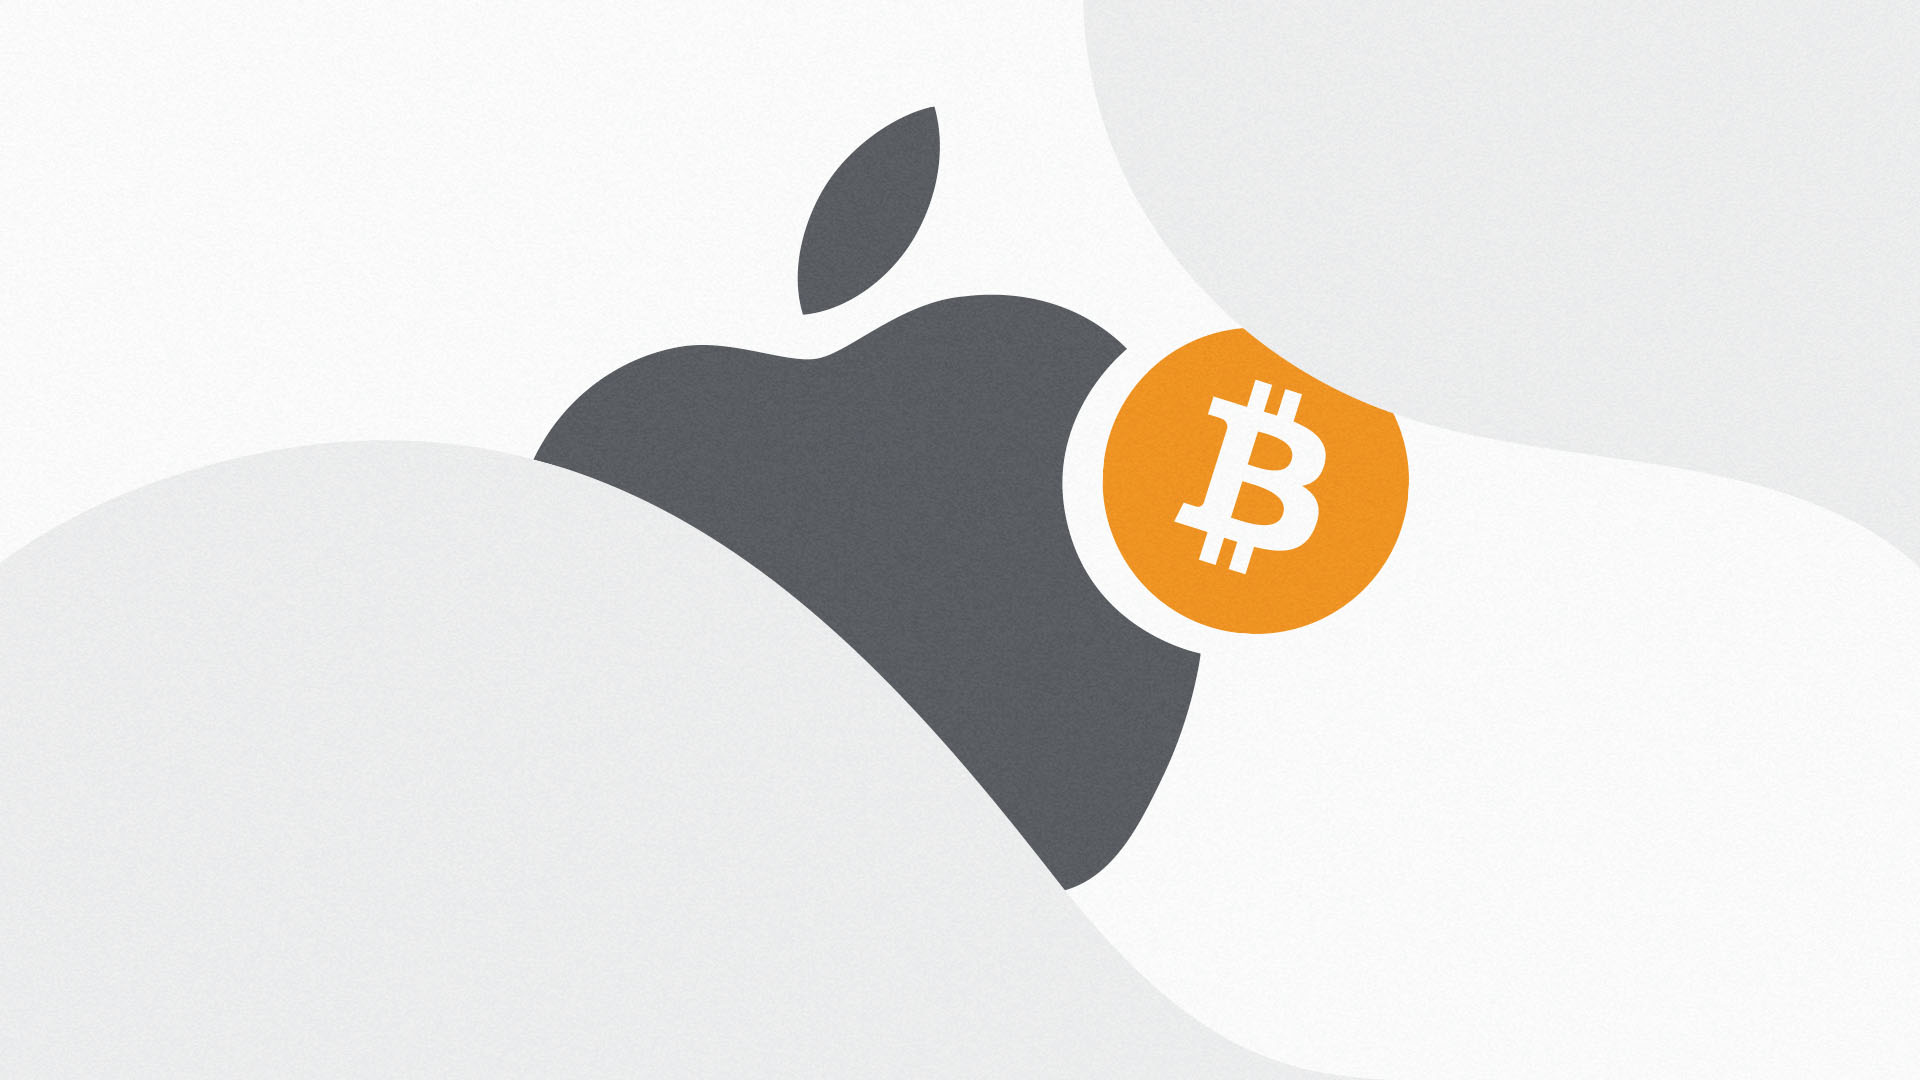 Apple could finally be gearing up to bring Crypto payments to its Wallets app, according to a job listing posted on the California tech titan's website this week.